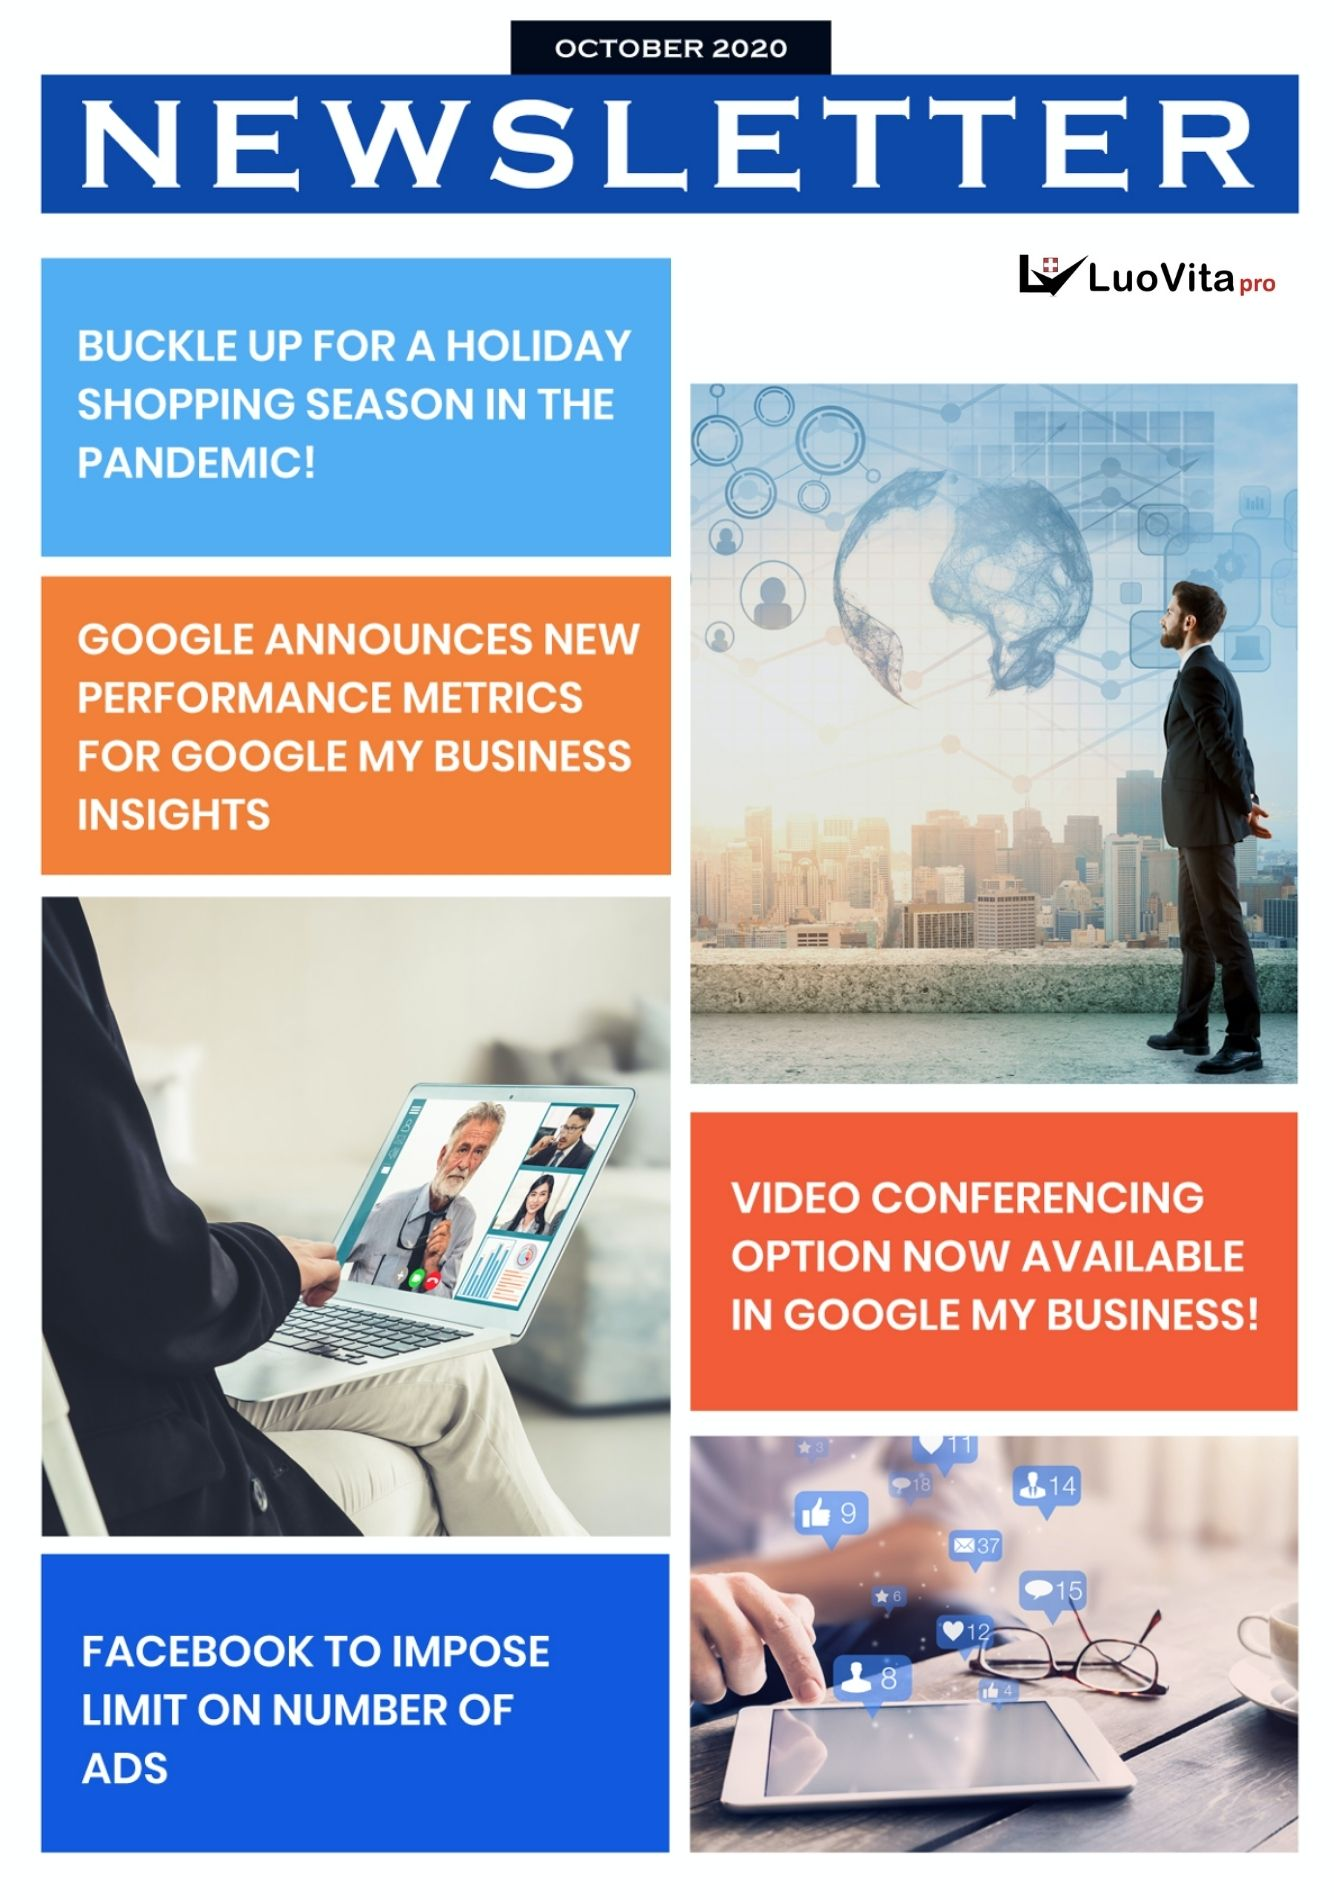 Facebook to Impose Limit on Number of Ads – Newsletter October 2020, BUCKLE UP FOR A HOLIDAY SHOPPING SEASON IN THE PANDEMIC!, GOOGLE ANNOUNCES NEW PERFORMANCE METRICS FOR GOOGLE MY BUSINESS INSIGHTS, VIDEO CONFERENCING OPTION NOW AVAILABLE IN GOOGLE MY BUSINESS!, FACEBOOK TO IMPOSE LIMIT ON NUMBER OF ADS